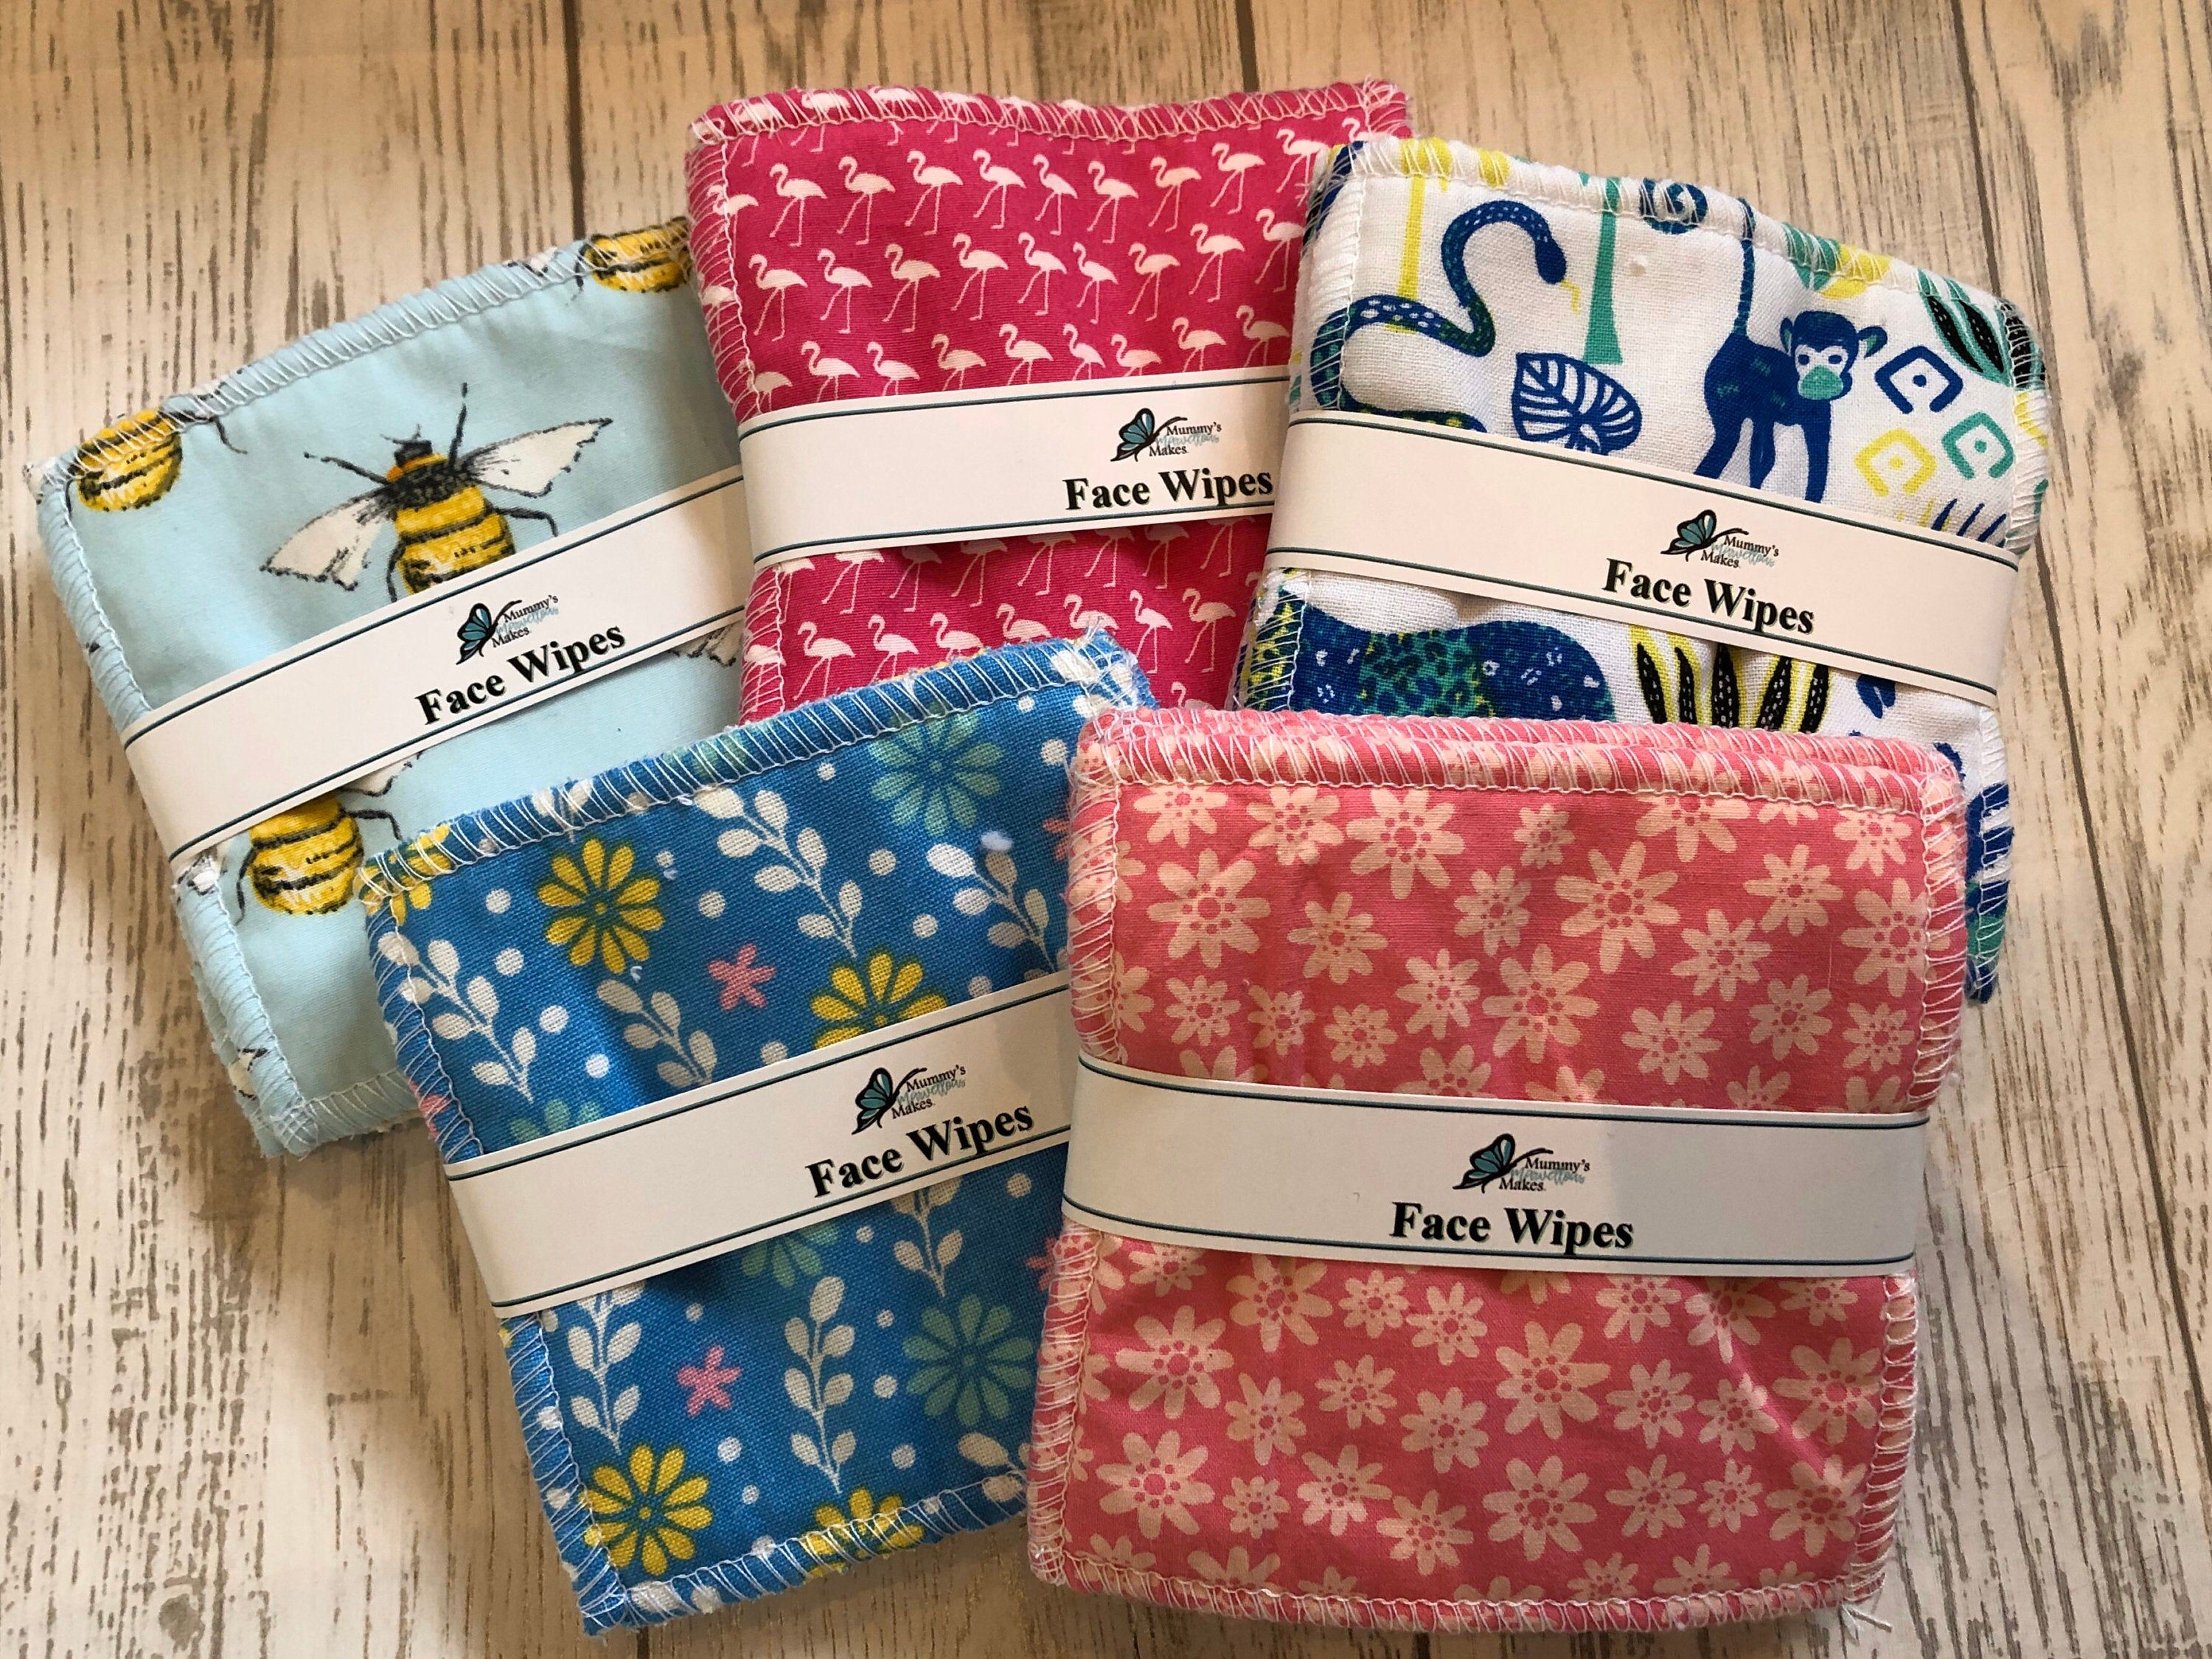 Soft Reusable Face Wipes, Makeup Wipes, Eye Make Up